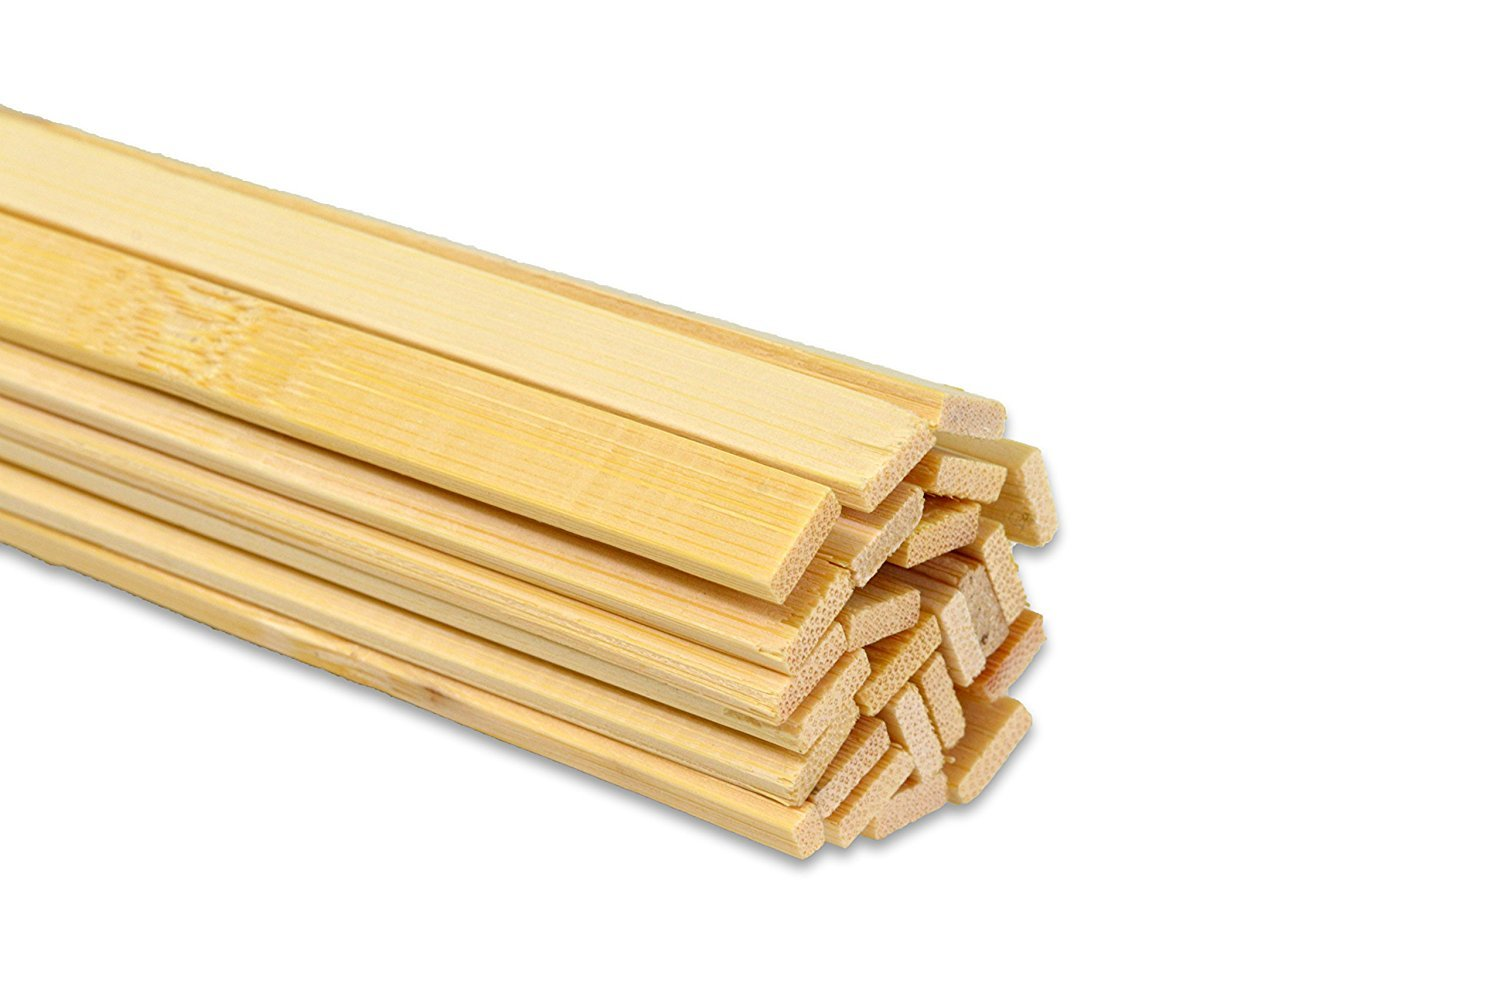 Bamboo Shop 2400 Extra Long Wooden Craft Sticks 15.5 Inches x 3/8 Inch. Food Grade. Natural Unfinished Popsicle Like Wood Strips for Crafts, Treats, Table Centerpieces, Coffee Stirrers